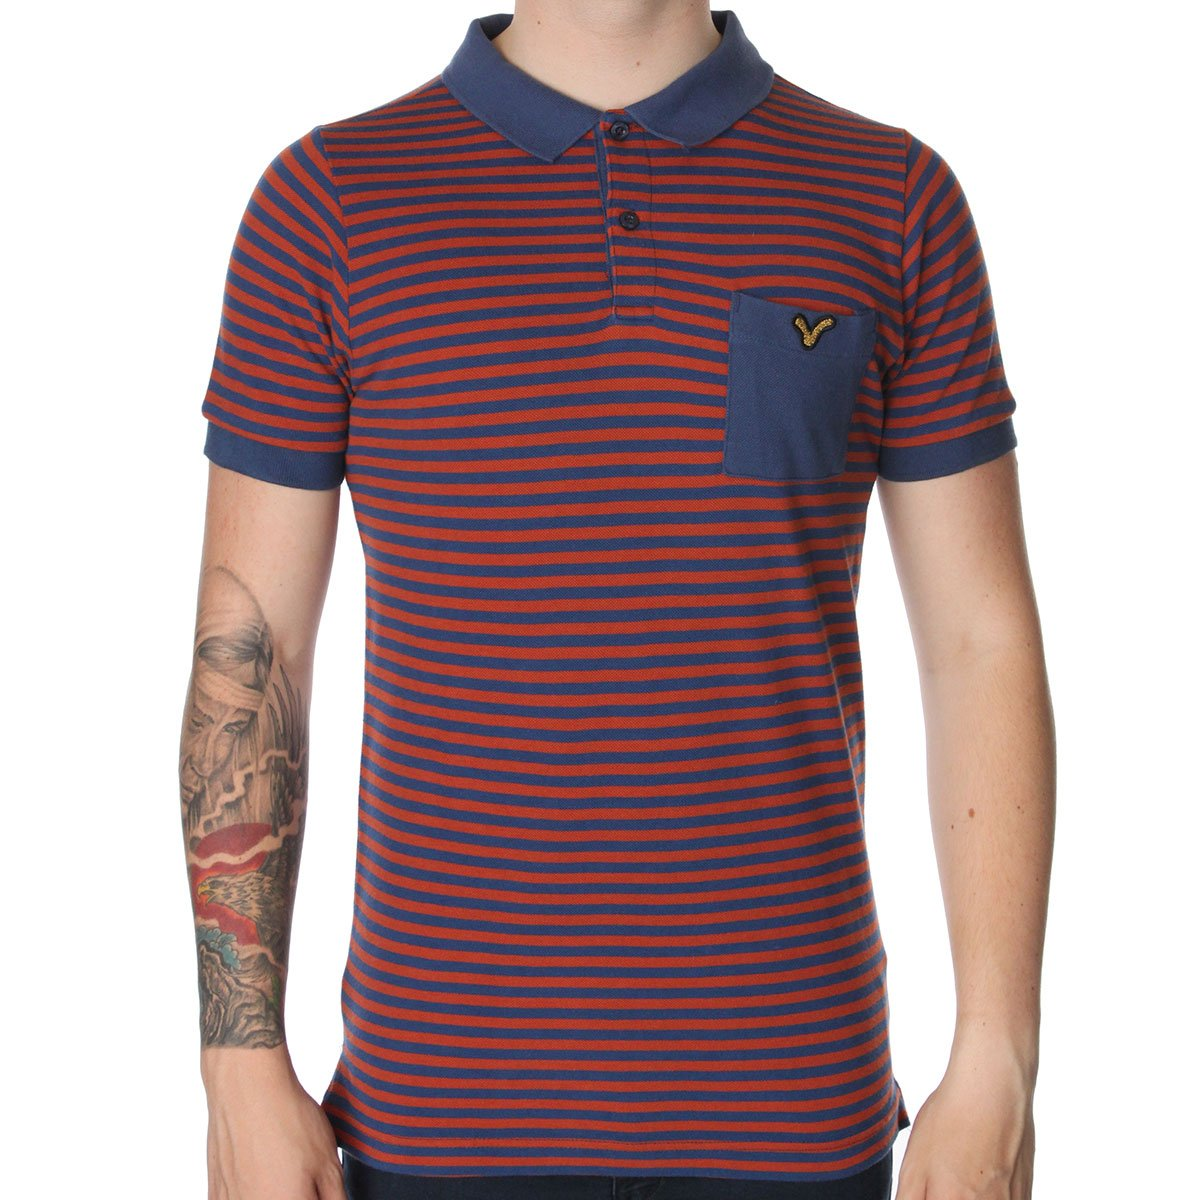 Voi Jeans Arsenal Polo T Shirt Voi Jeans From The